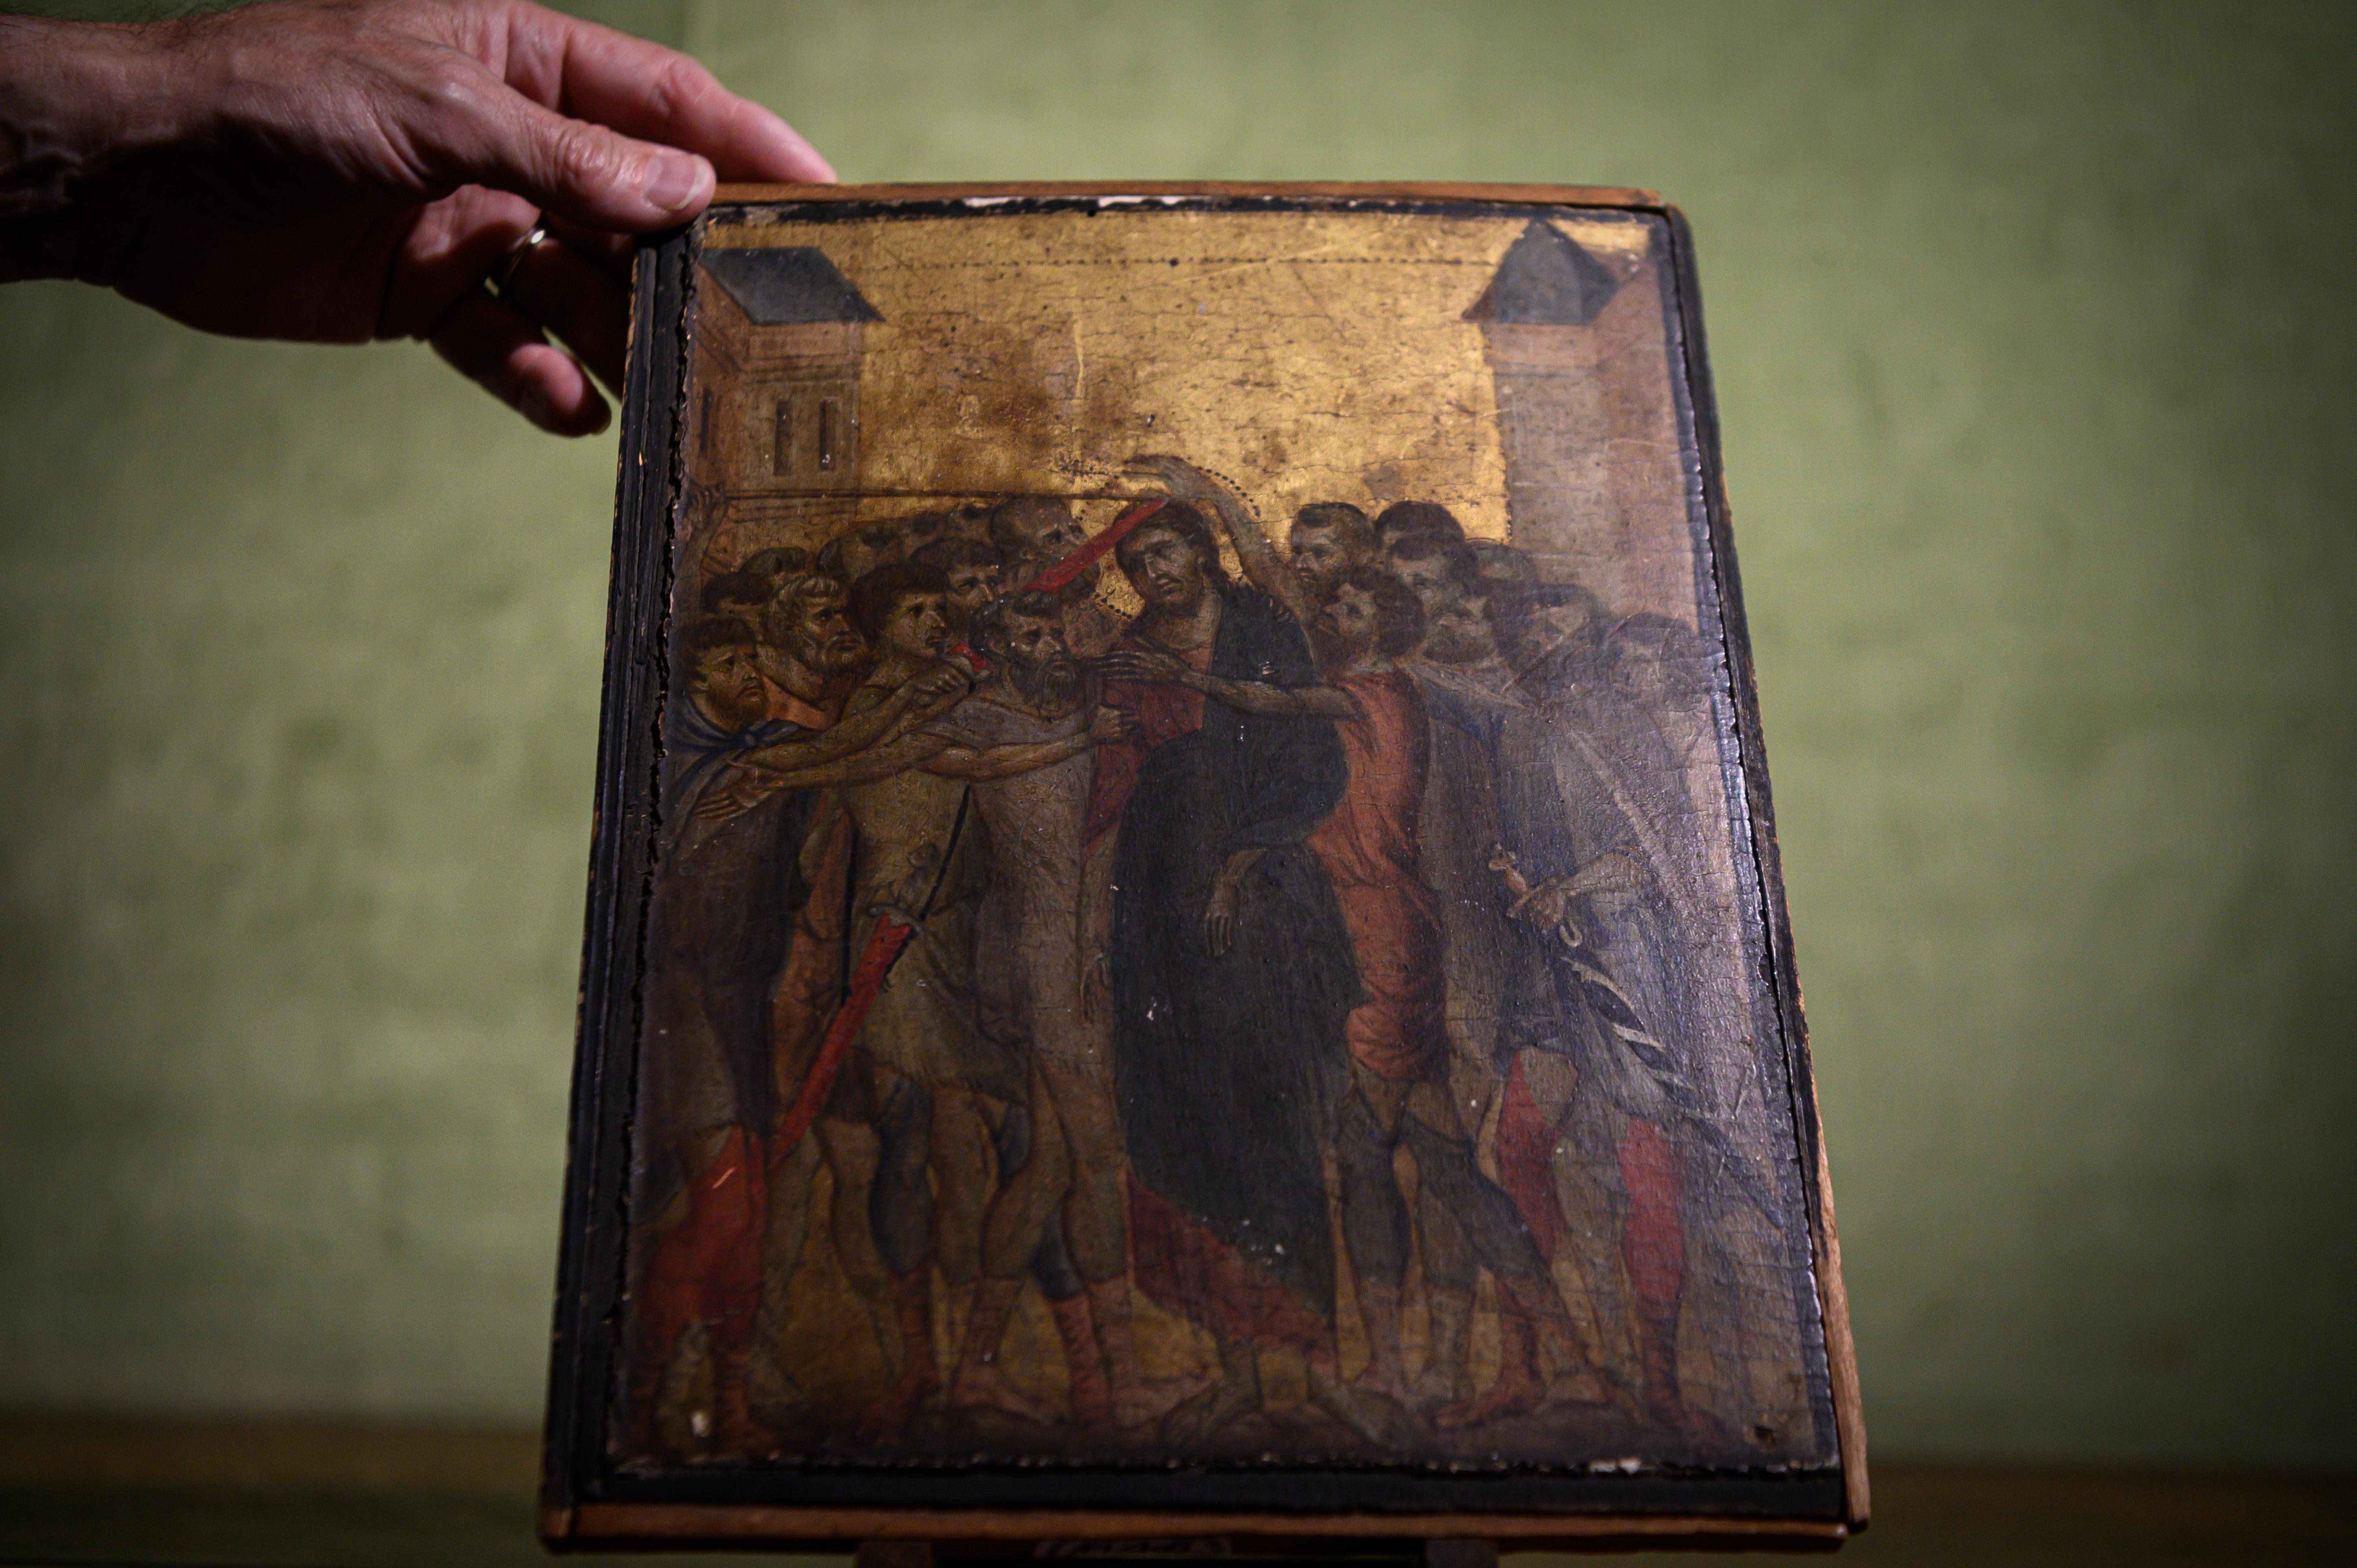 Renaissance masterpiece discovered hanging in old woman's kitchen